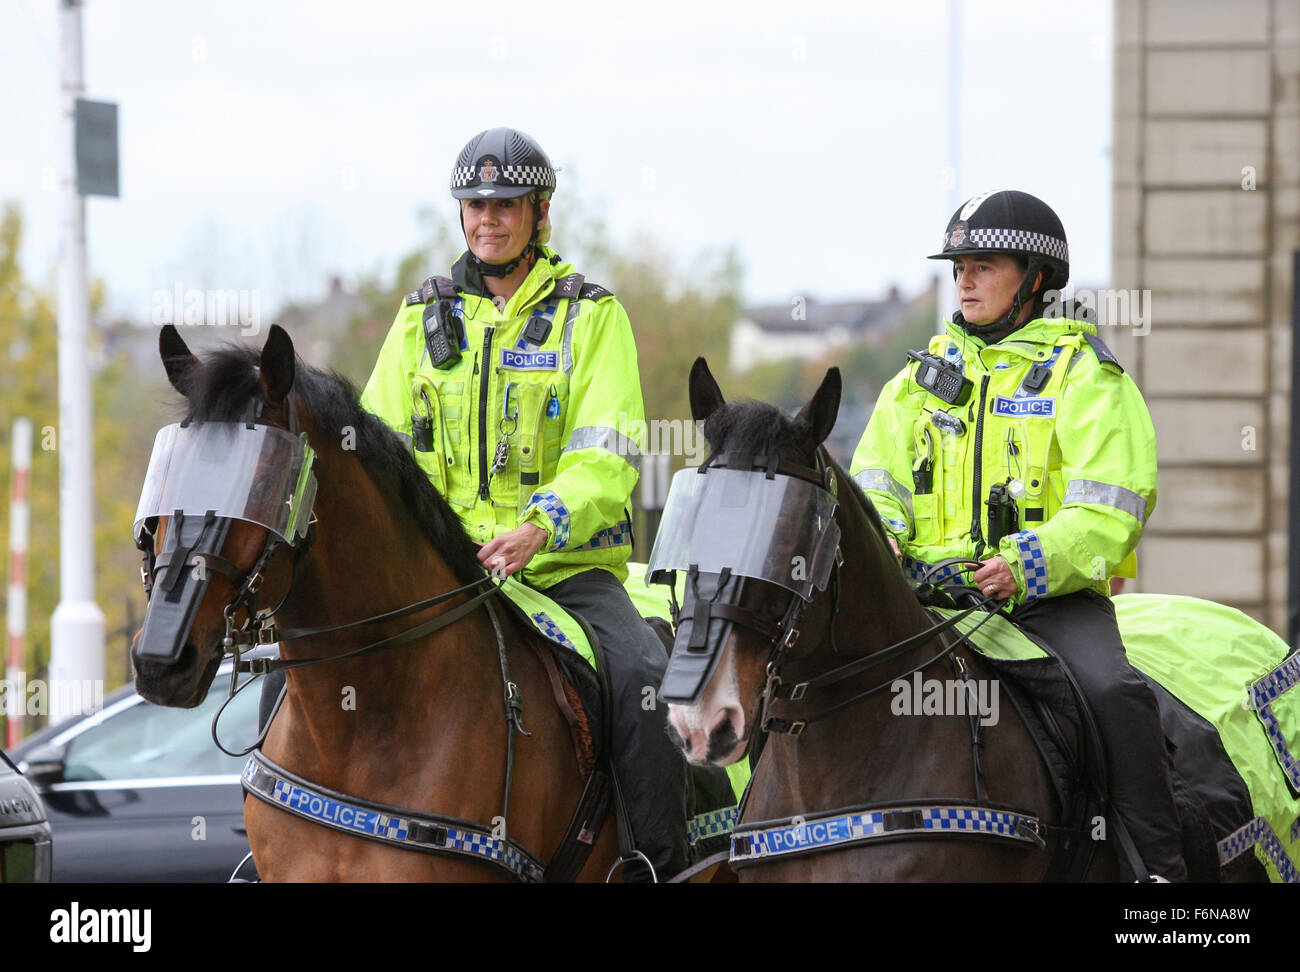 Northumbria mounted Police officers attending a football match in Sunderland - Stock Image